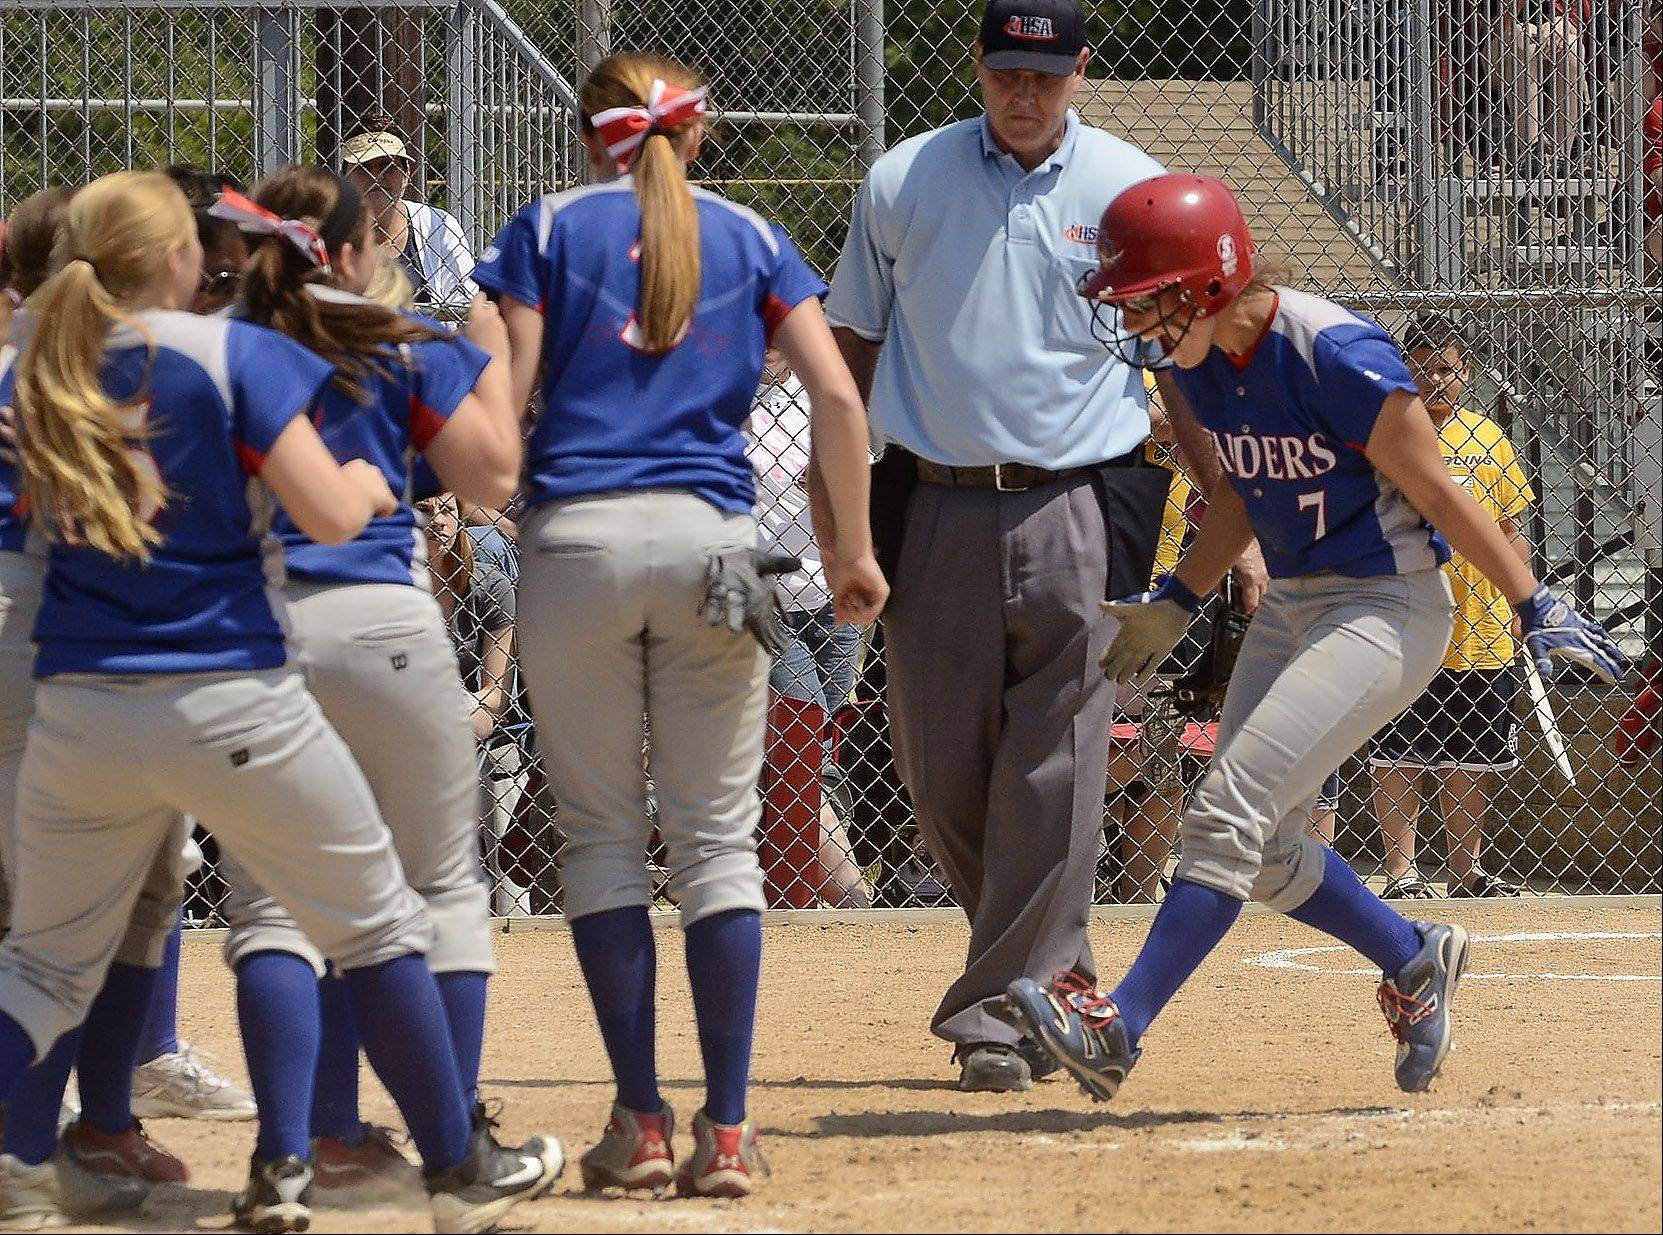 Glenbard South's Hannah Taylor is met at home plate by her teammates after hitting a two-run home run in the 4th inning of the Class 3A state semifinal between Glenbard South and Tinley Park.